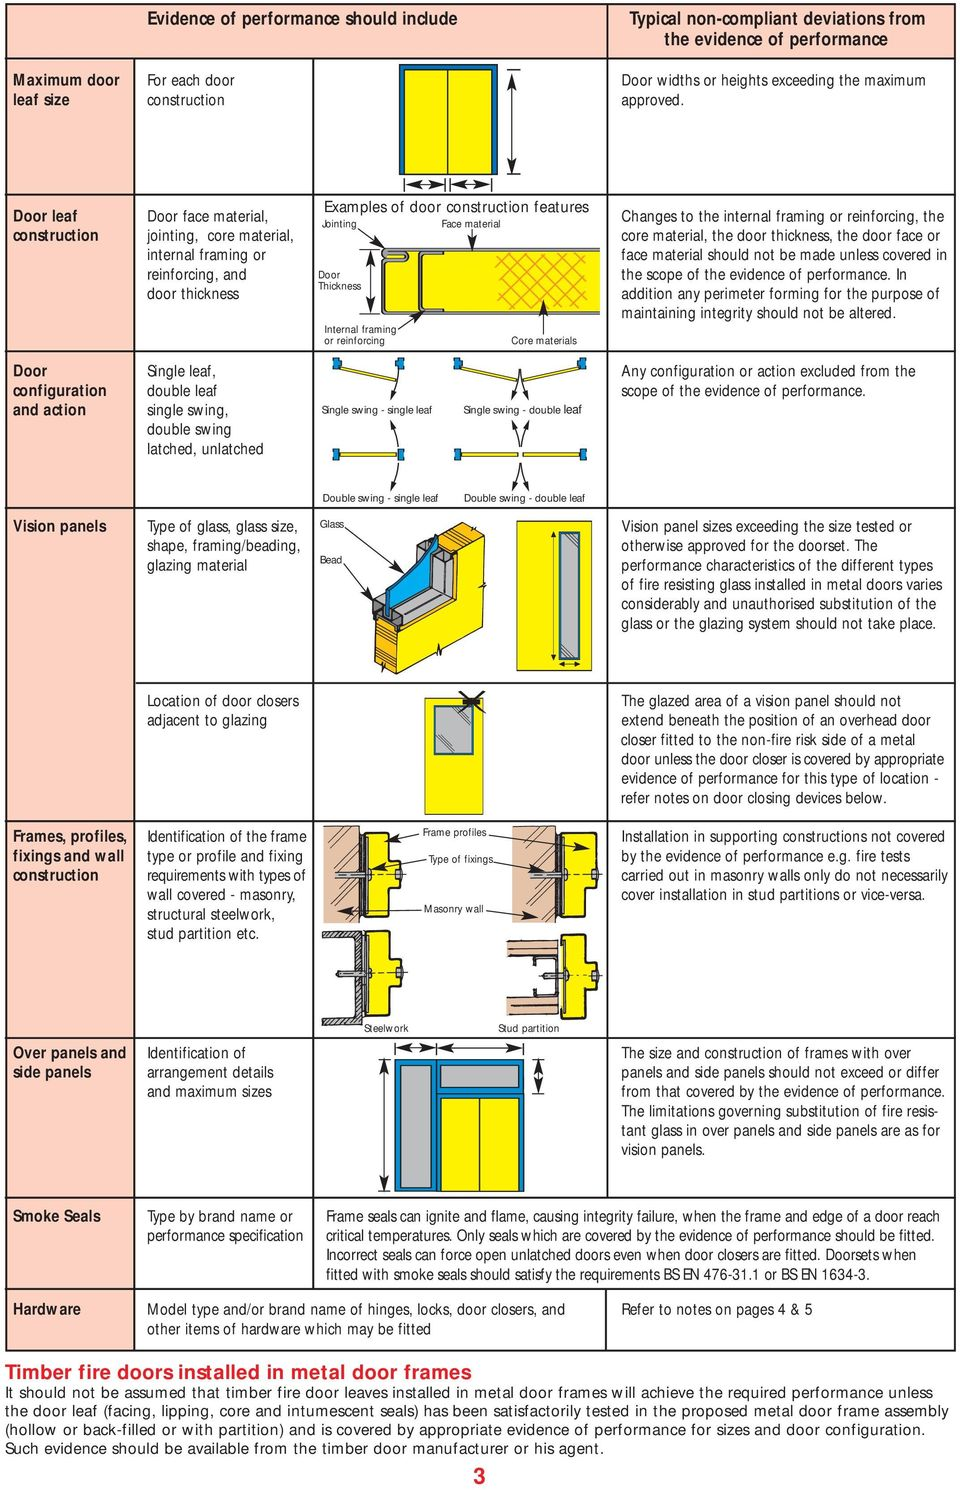 Examples of door construction features leaf face material, Changes to the internal framing or reinforcing, the Jointing Face material construction jointing, core material, core material, the door